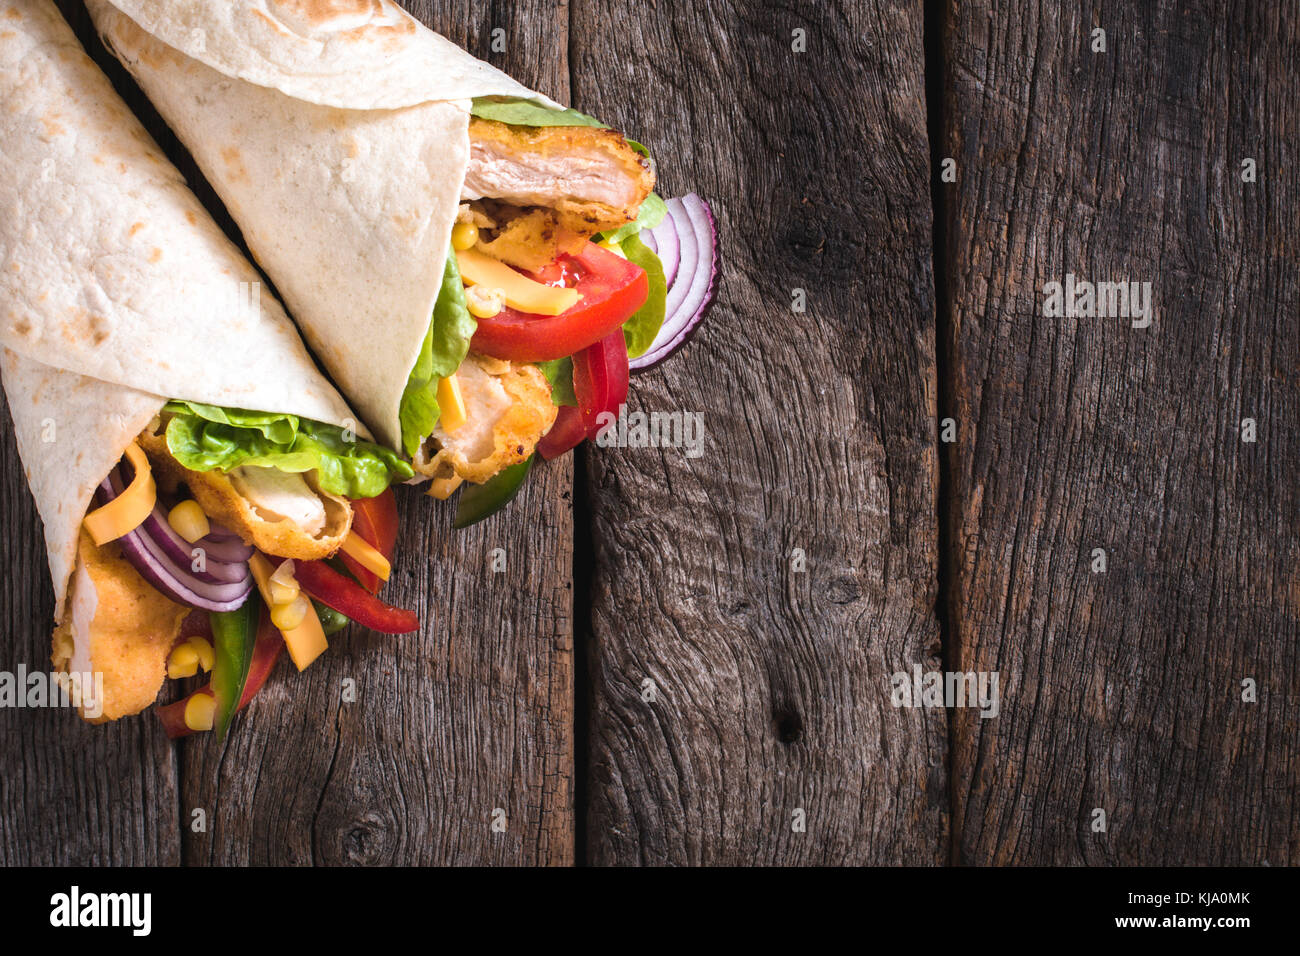 Tortilla sandwiches with fried chicken and vegetables on wooden background with blank space - Stock Image